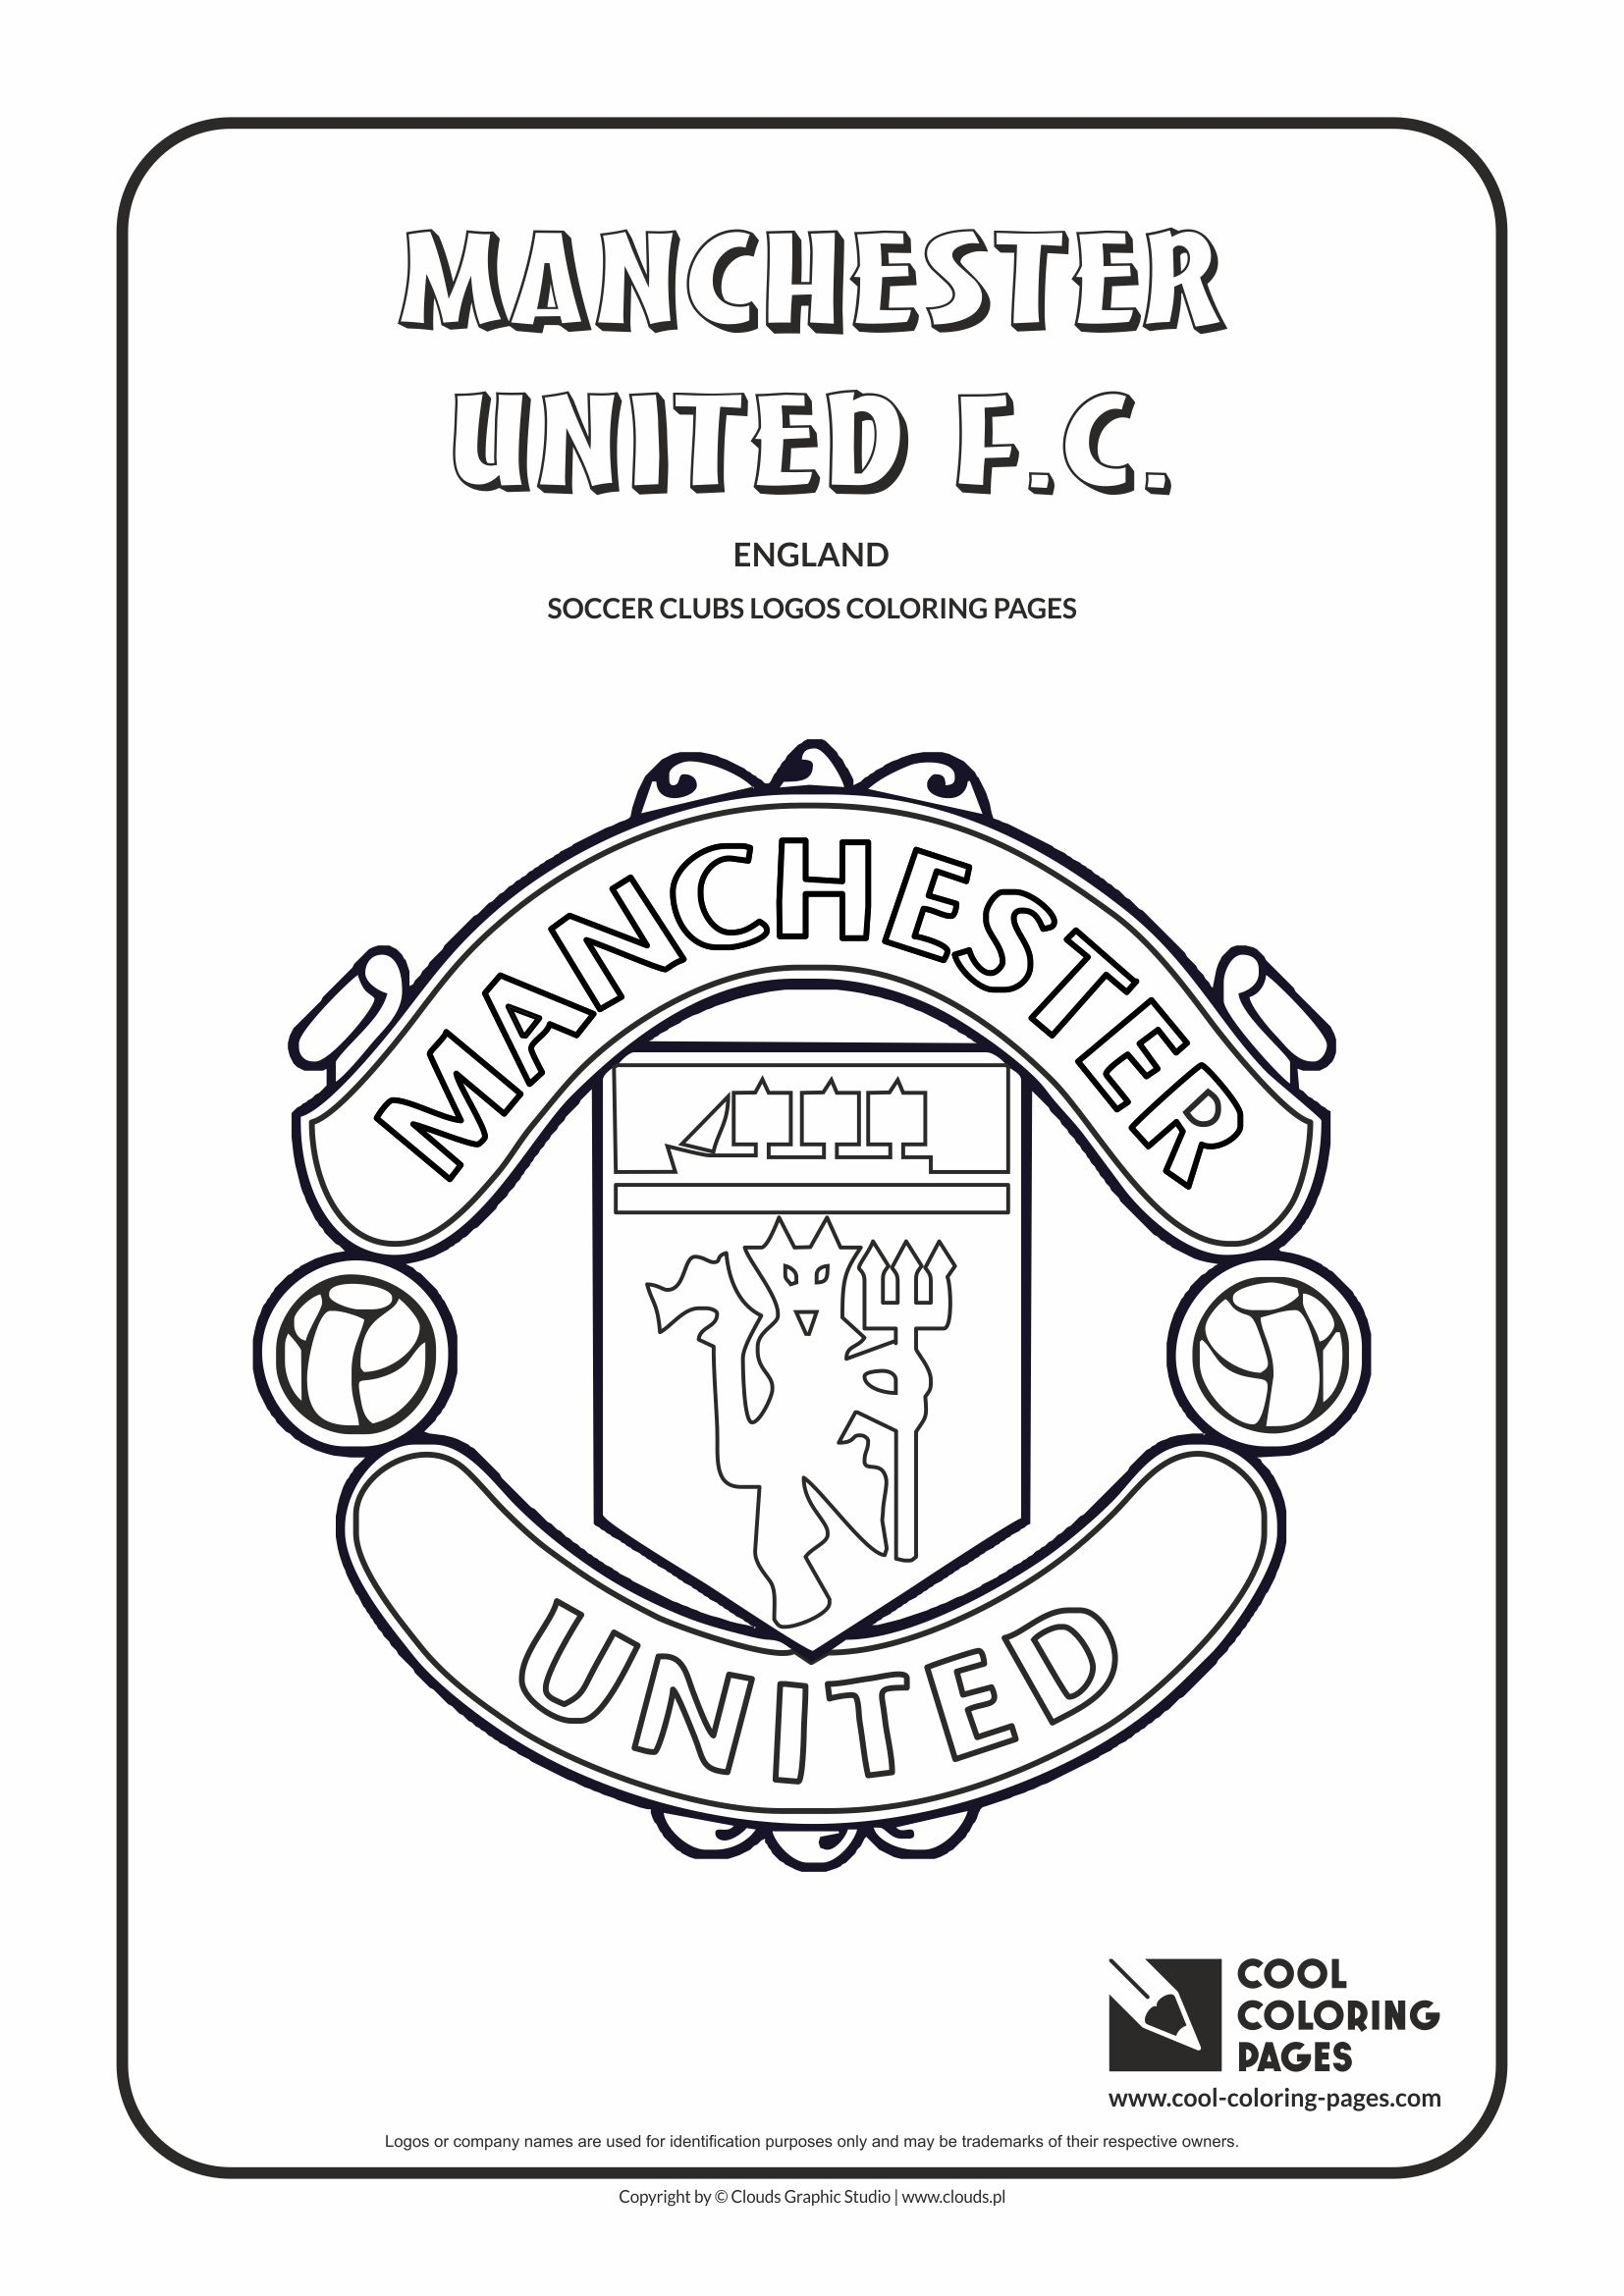 Football Color Pages Cool Coloring Pages Soccer Clubs Logos Cool Coloring Pages Free